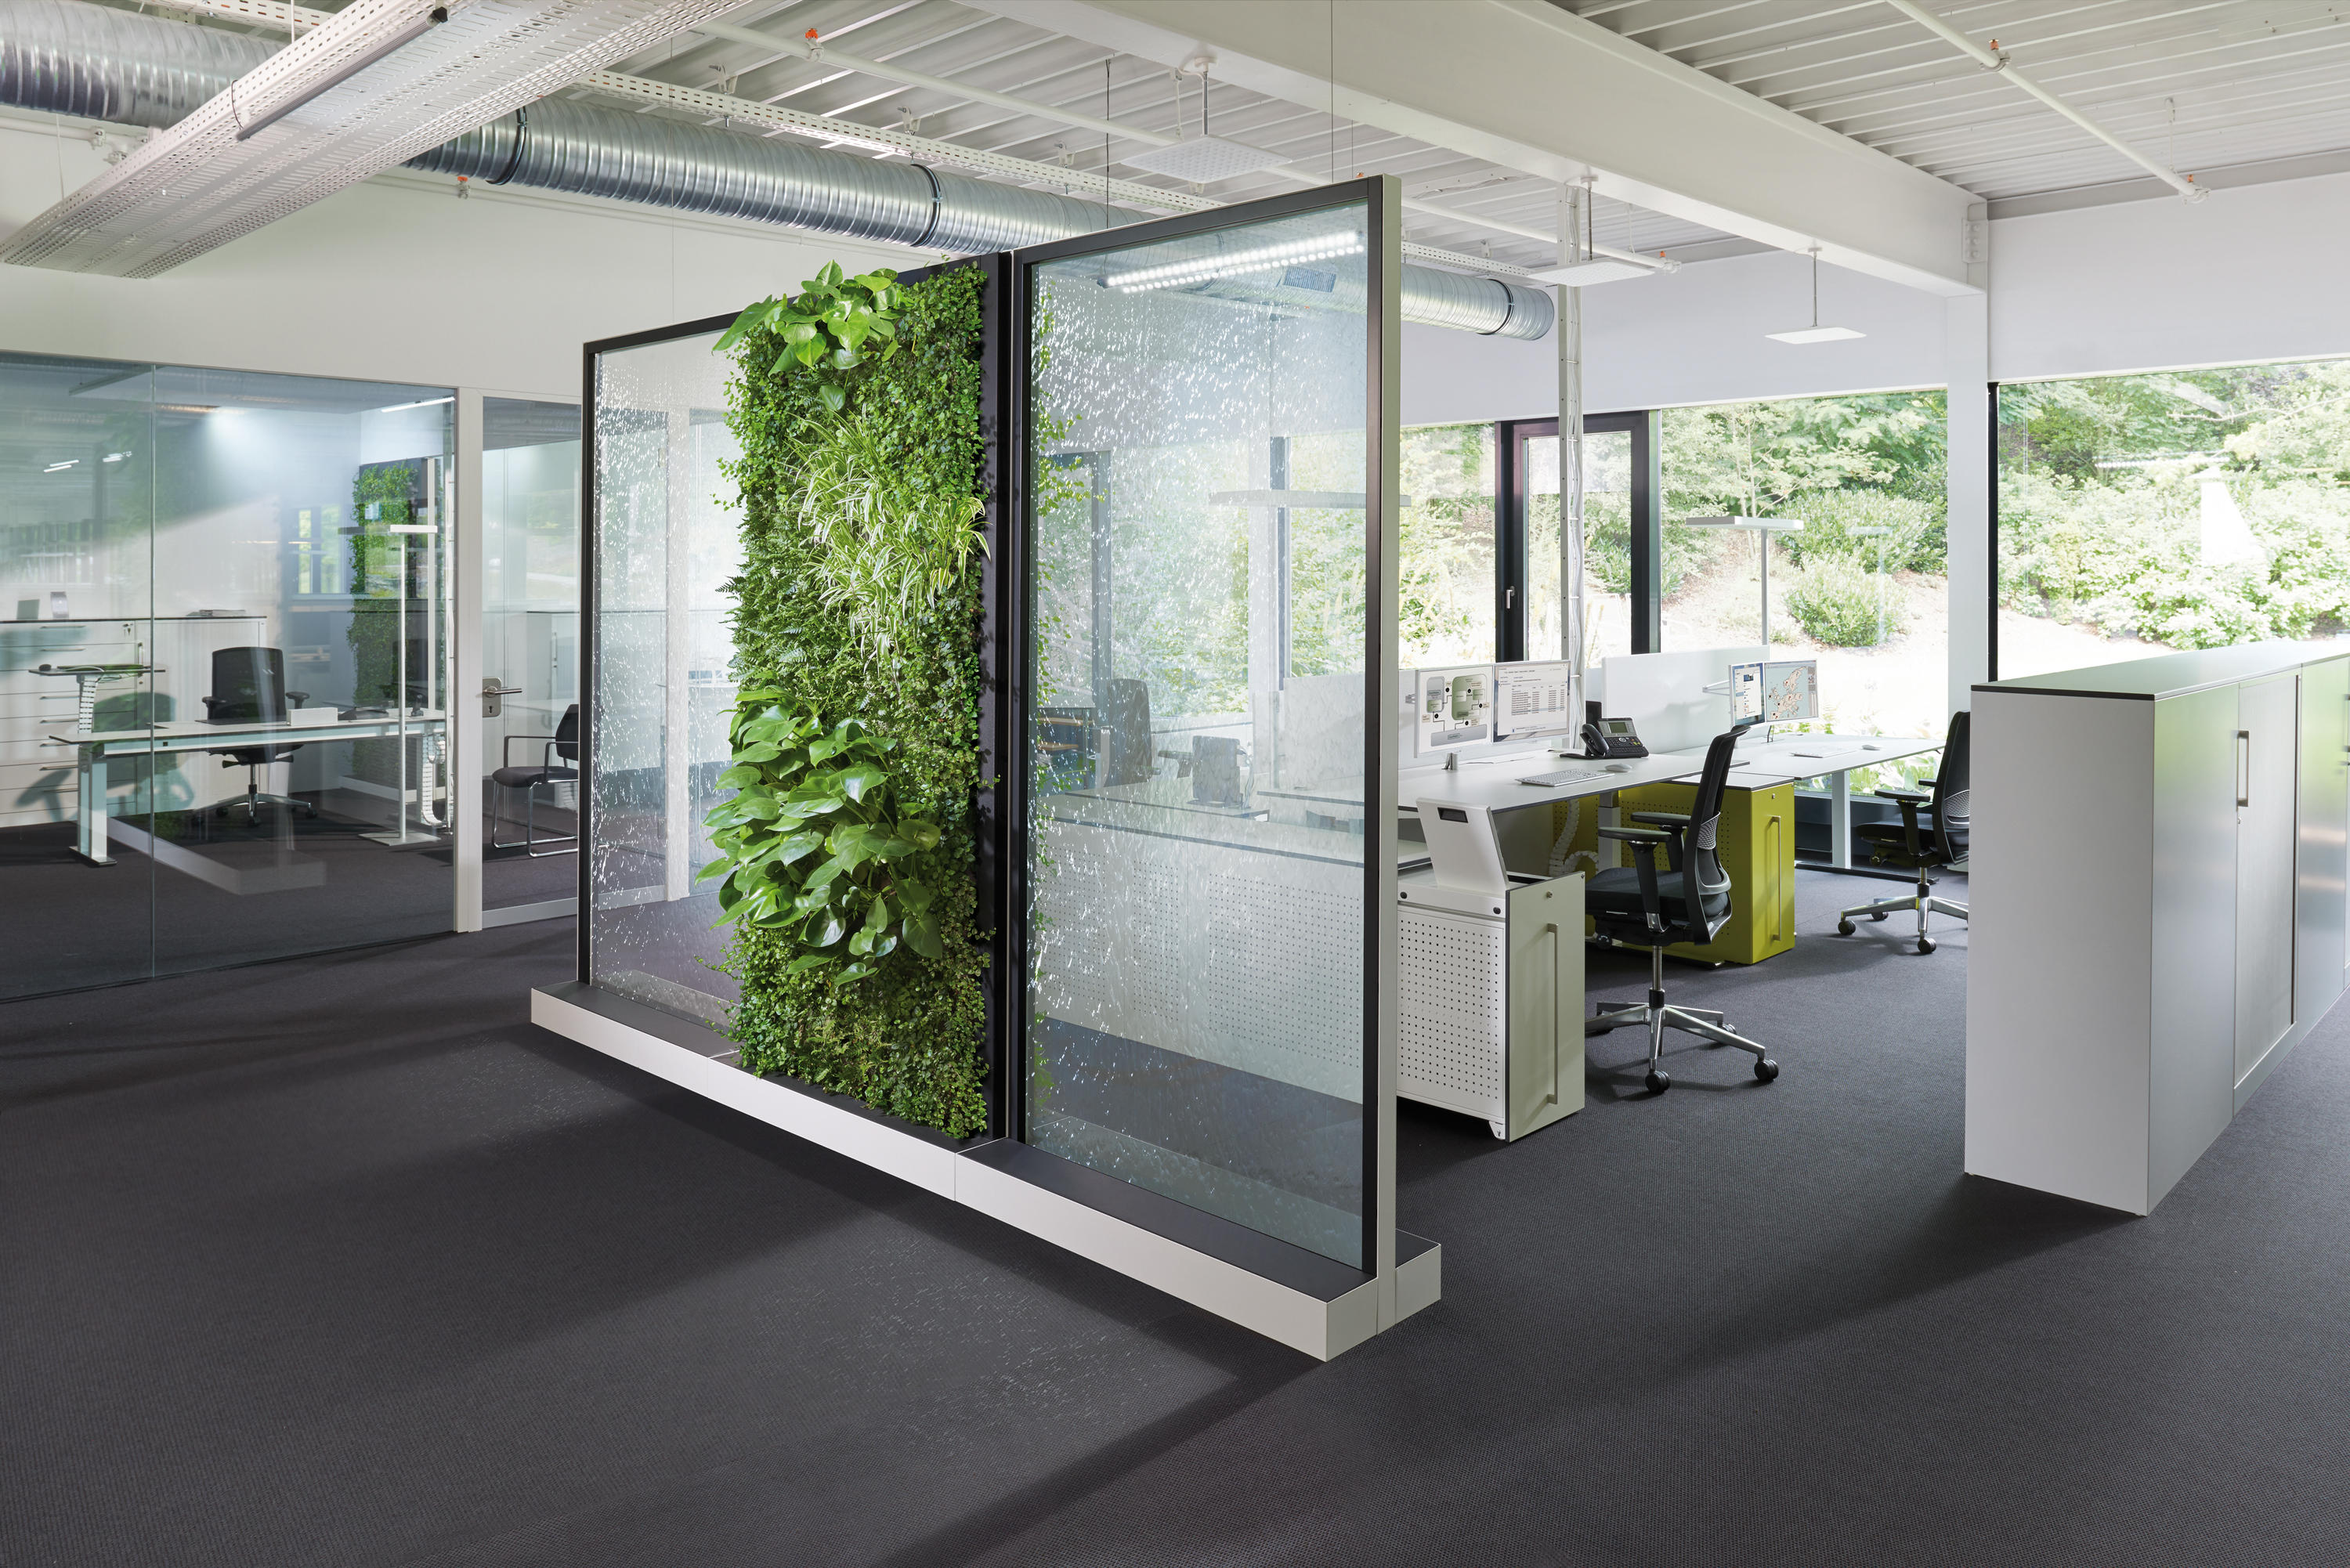 CLIMATE OFFICE MOBILE WASSERWAND CLIMATEOFFICE - Partitions from C+P ...